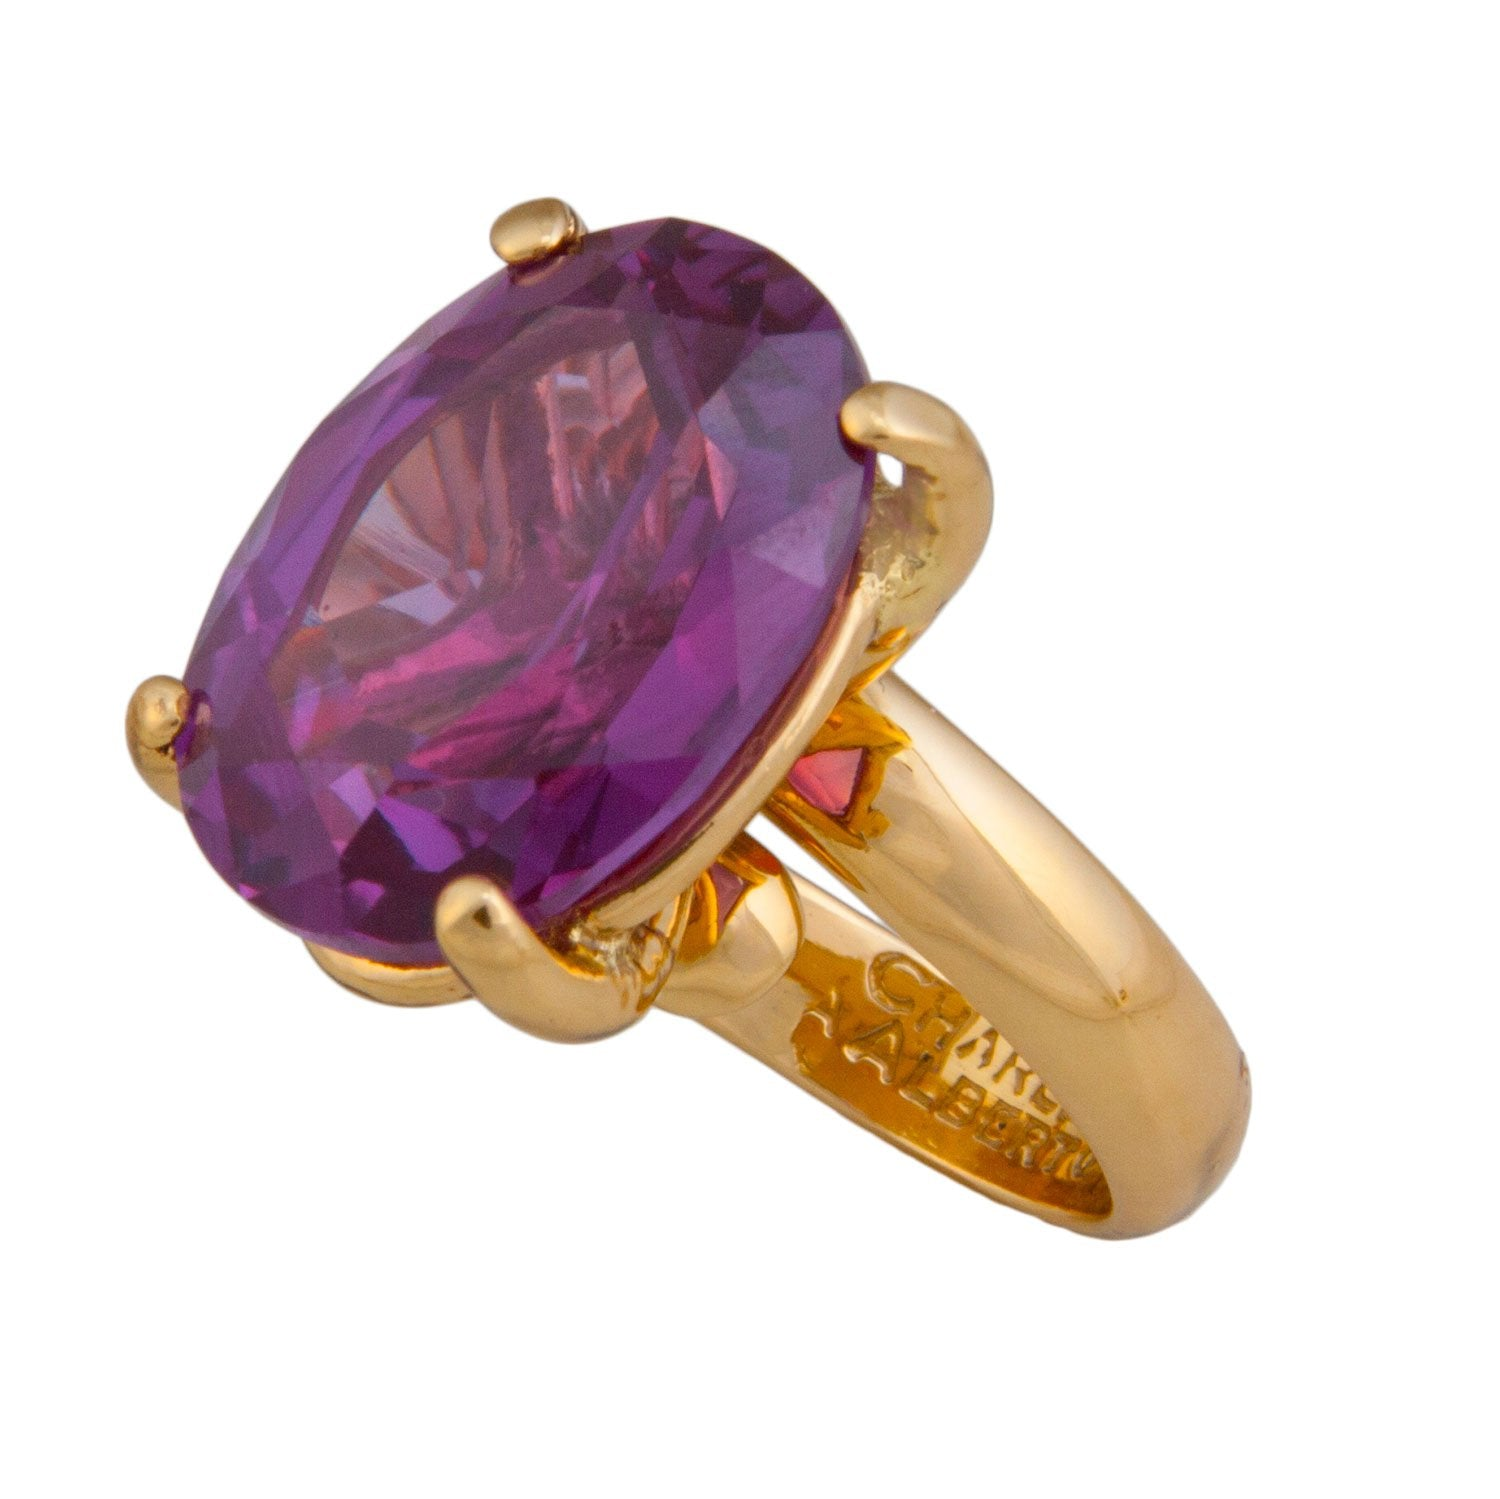 Alchemia Amethyst Prong Set Adjustable Ring | Charles Albert Jewelry